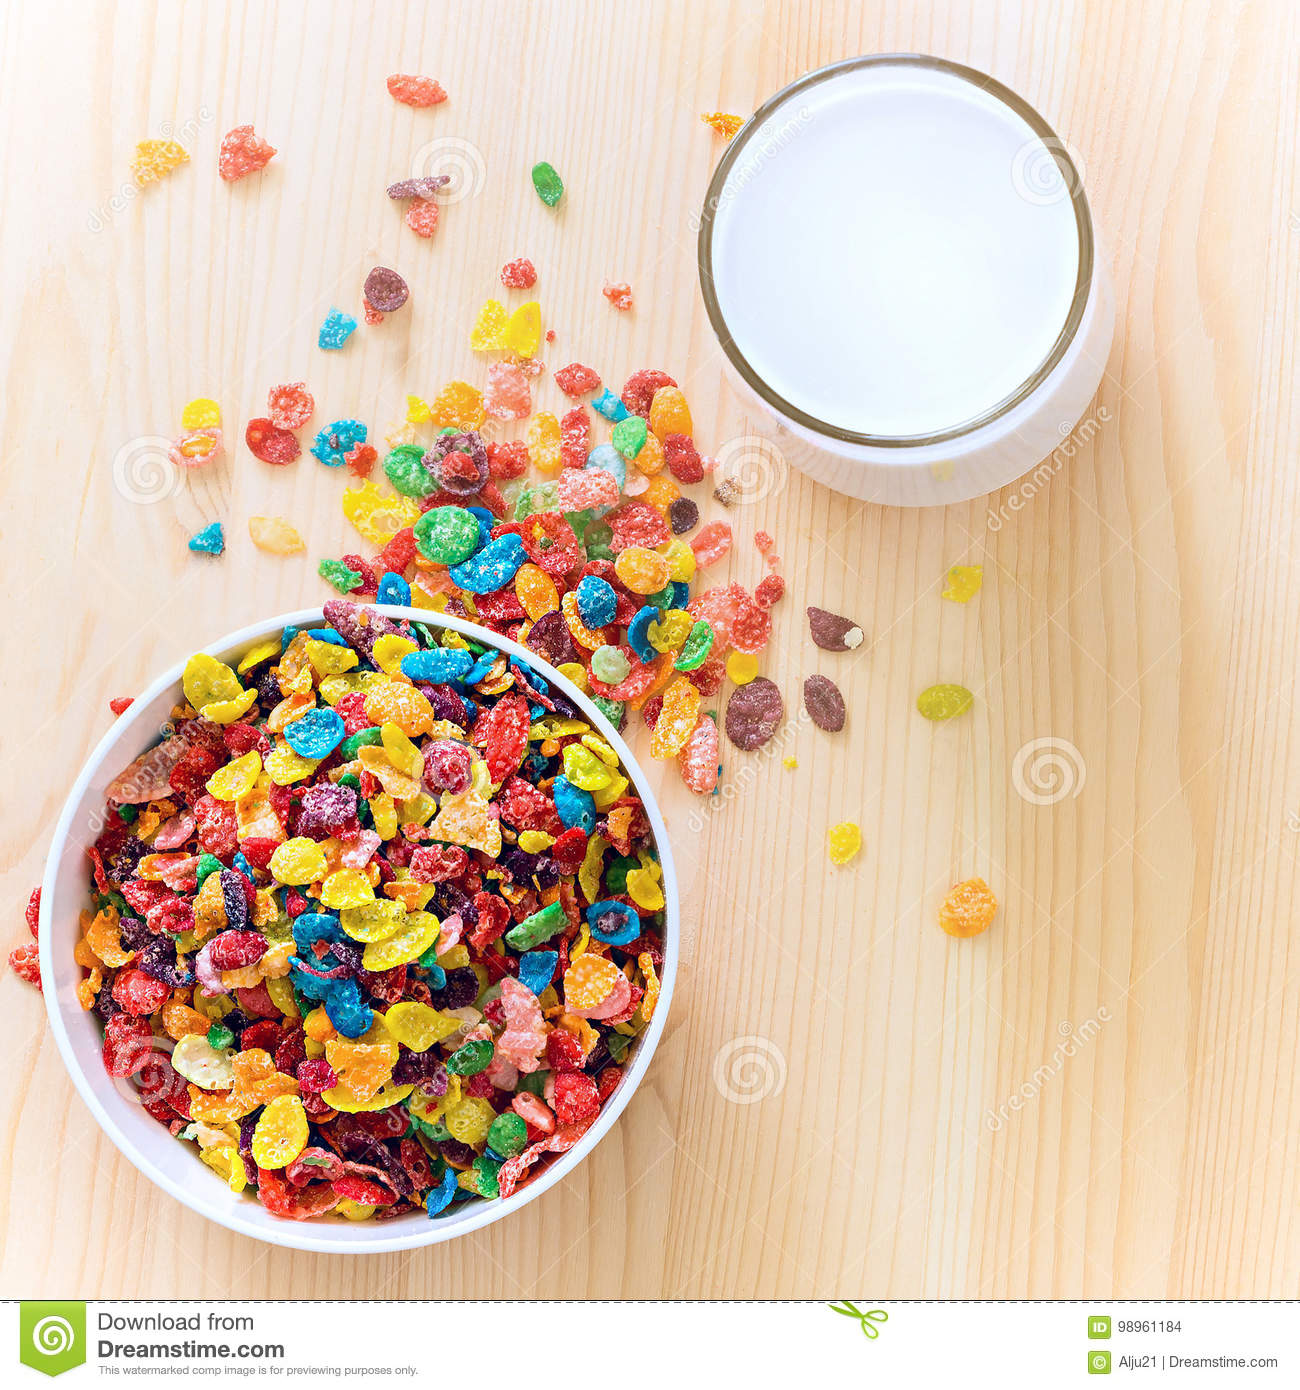 Kids Healthy Quick Breakfast. Colorful Rice Cereal With